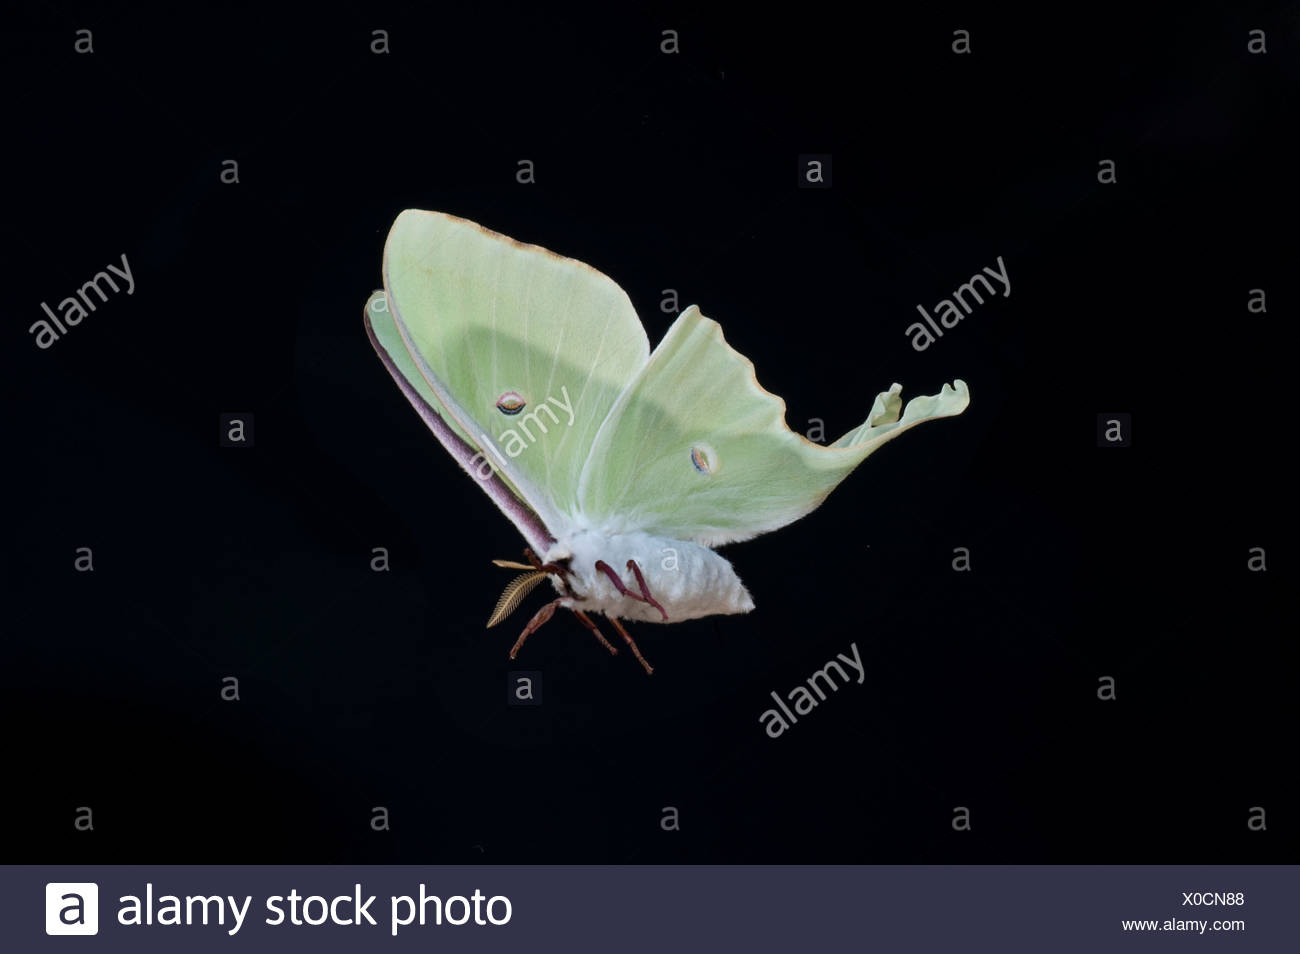 American Moon Moth  Actias luna USA in flight flying high speed photographic technique - Stock Image